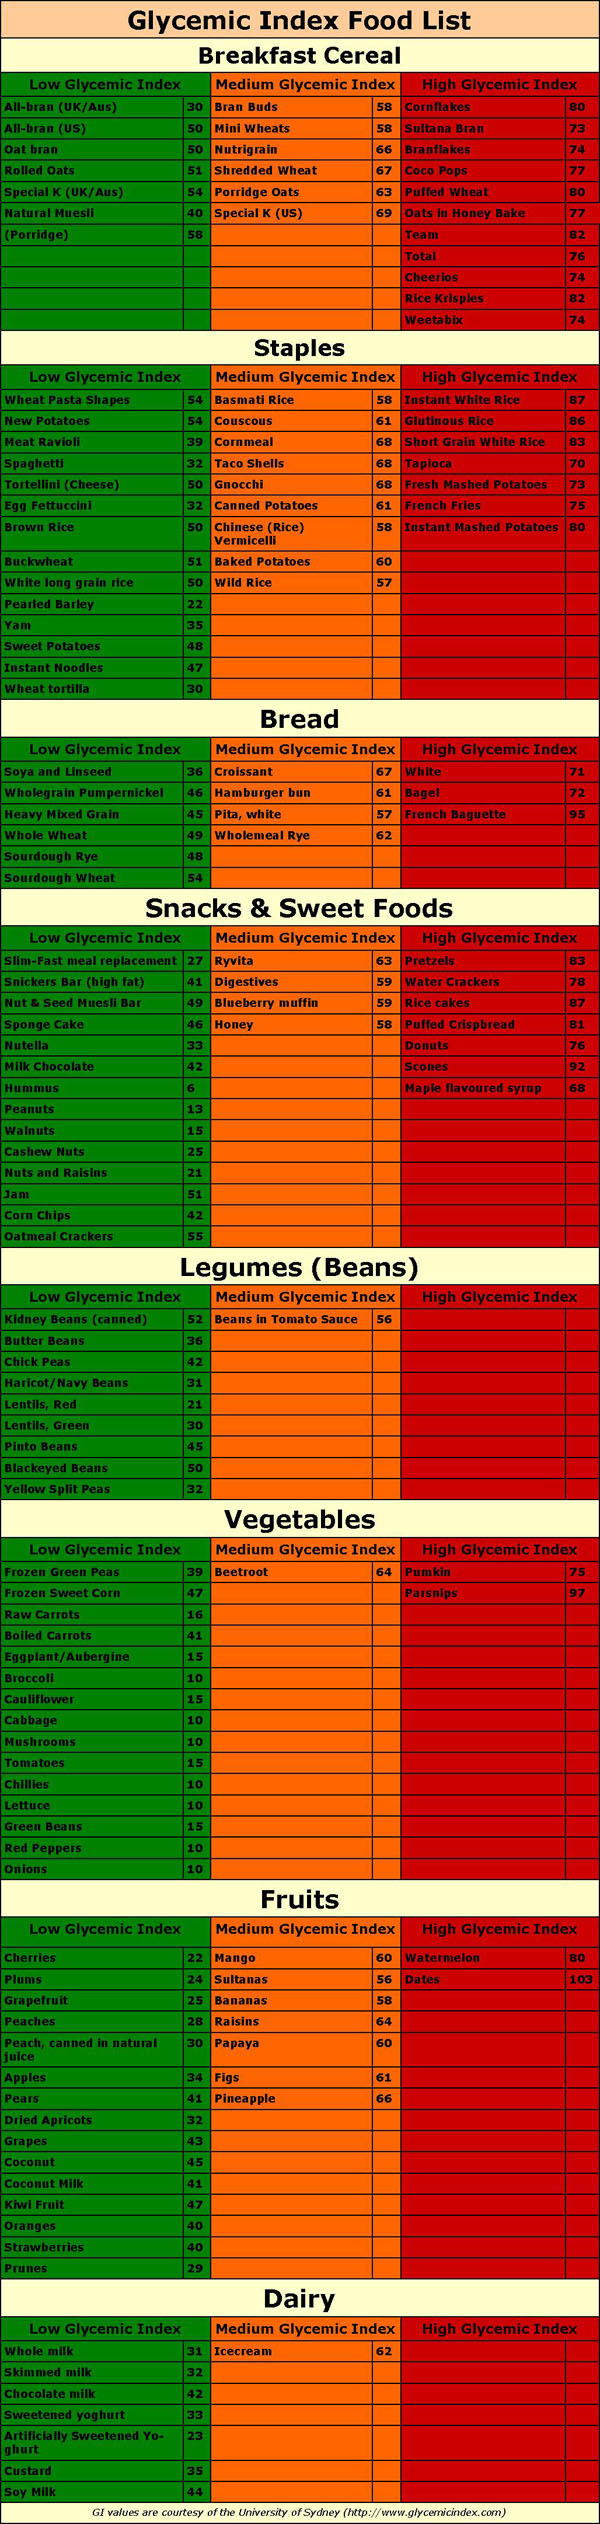 Low glycemic index food list chart.